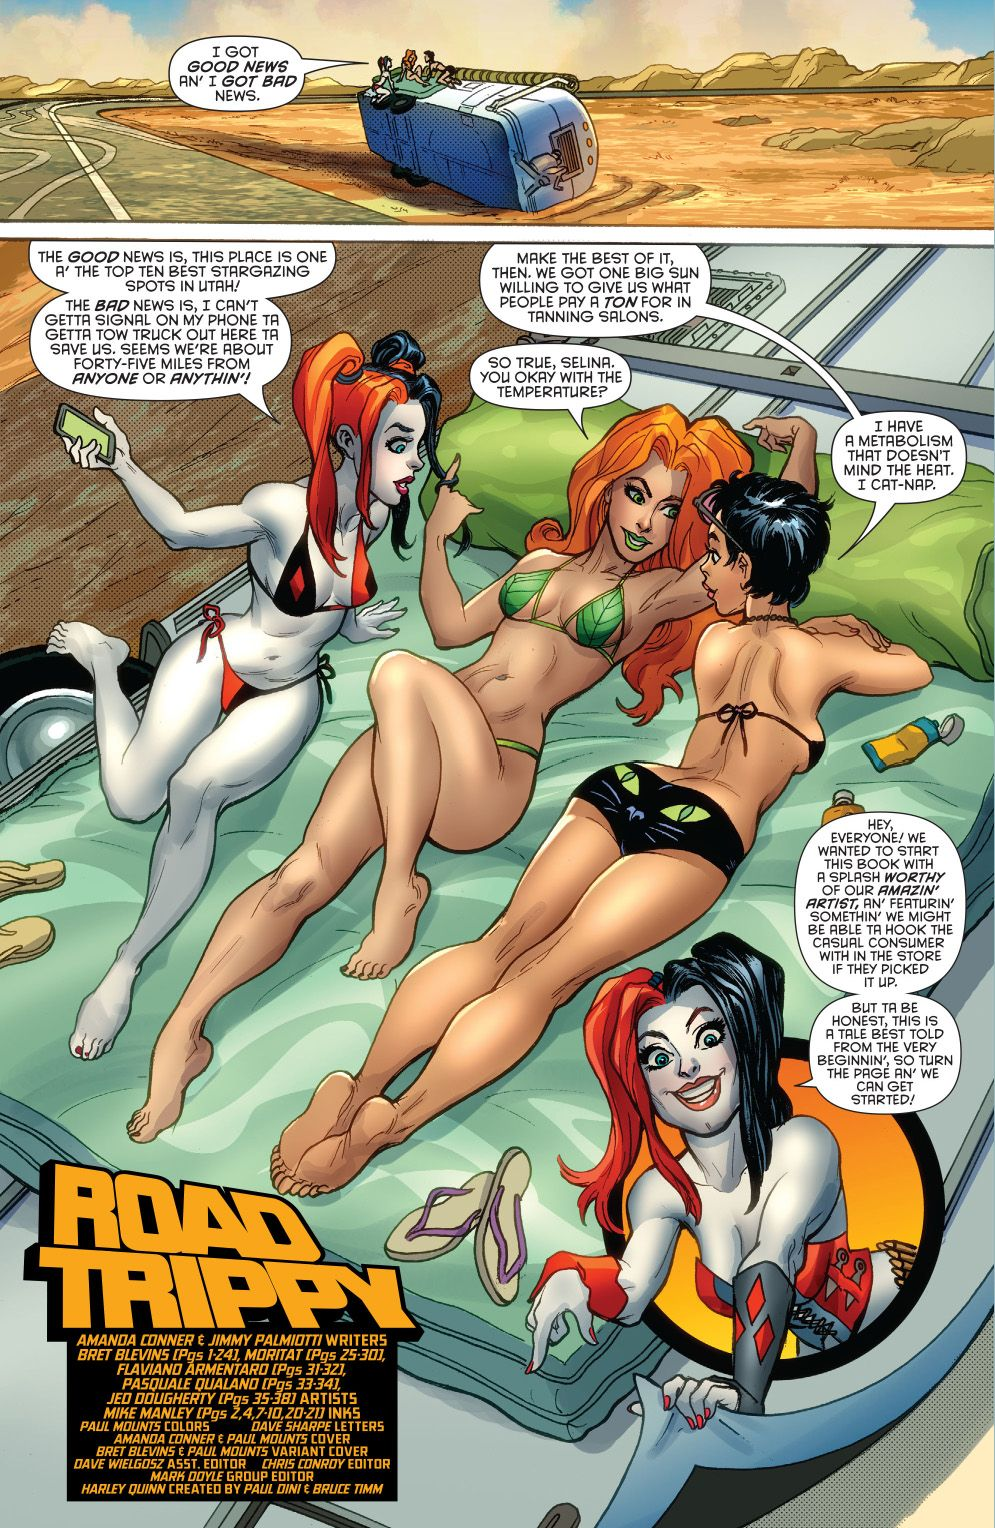 Harley quinn and poison ivy naked